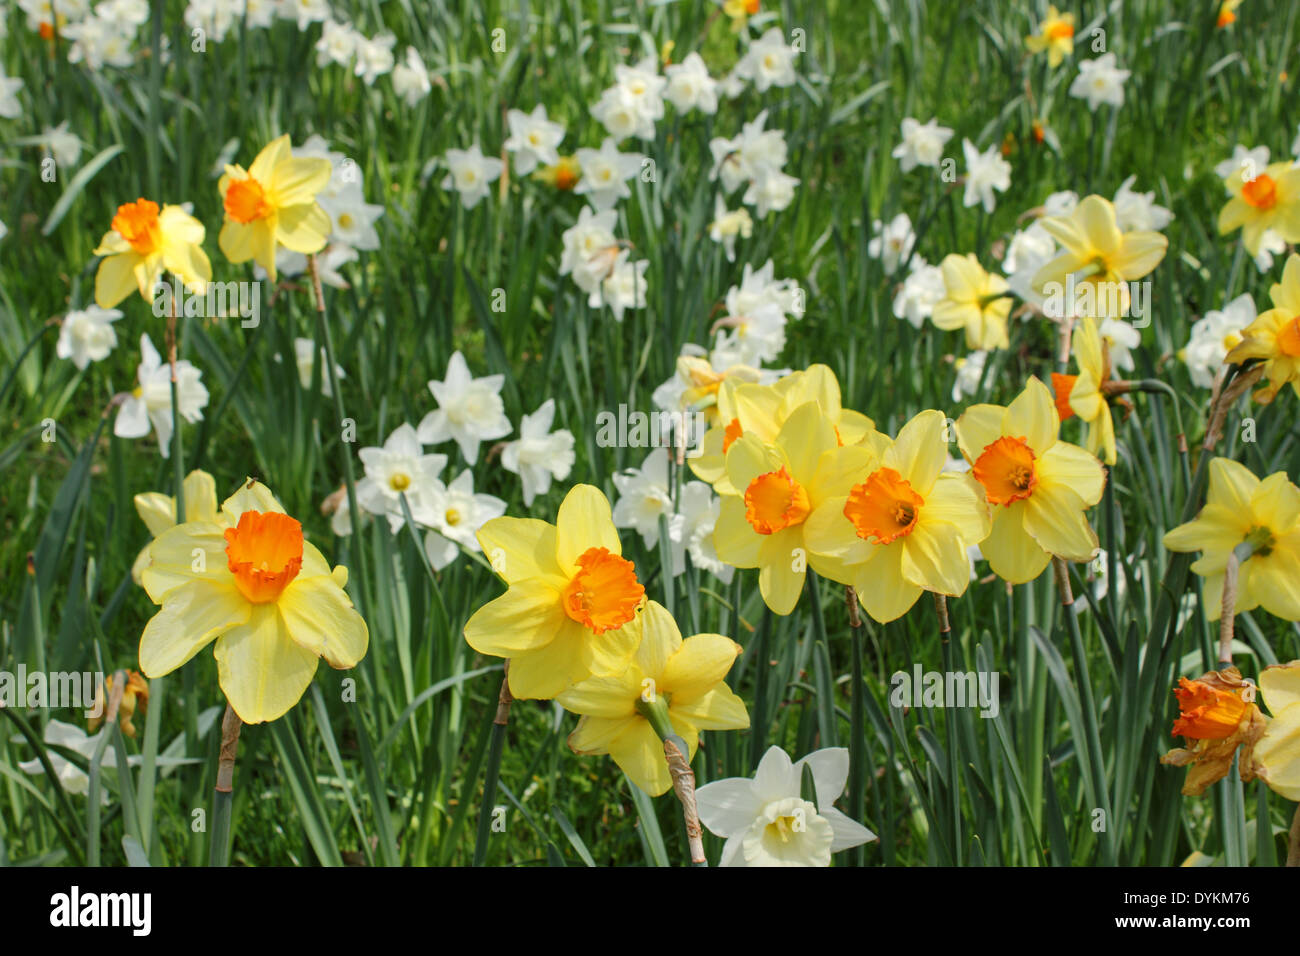 Spring Flowers In Pembroke Lodge Richmond Park Surrey Uk Stock Photo